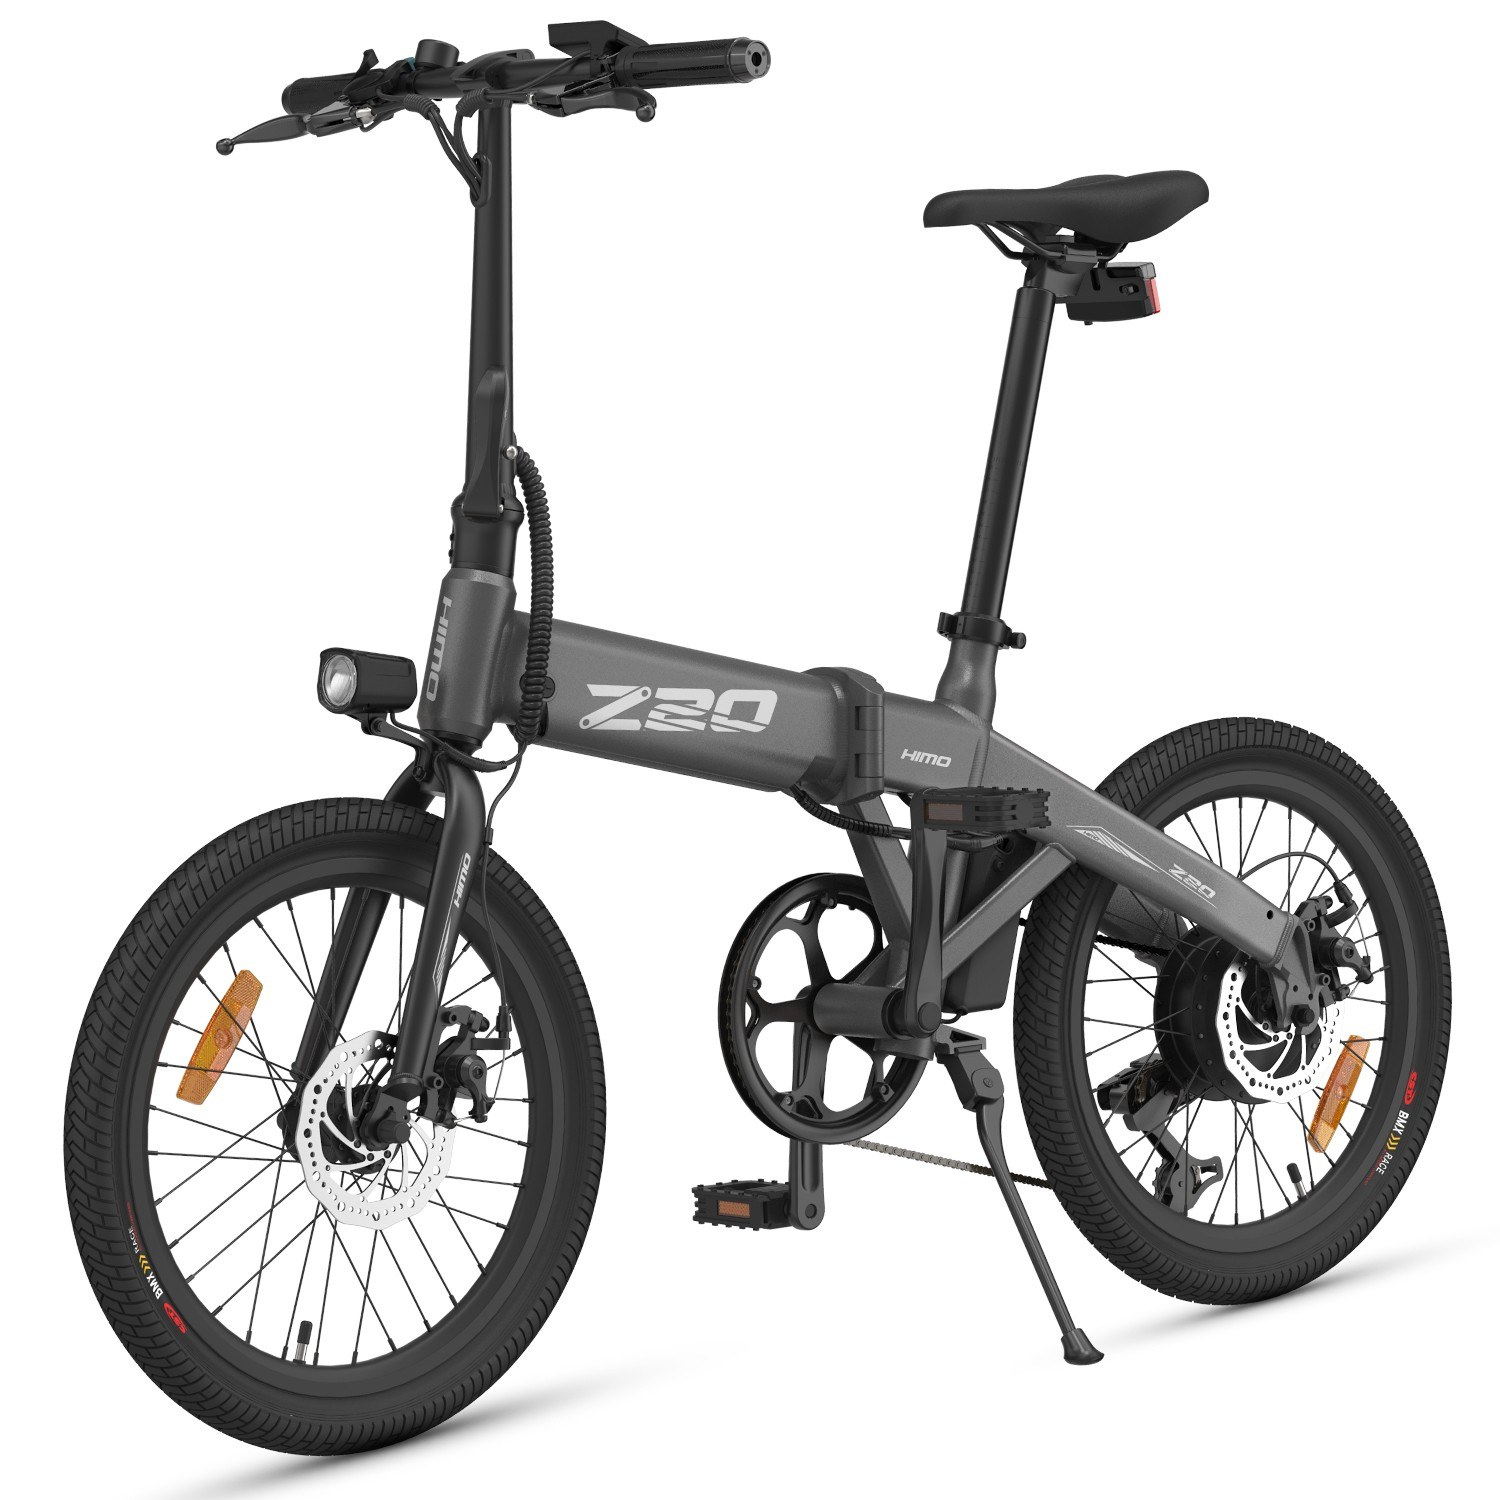 cafago.com - 16% OFF HIMO Z20 20 Inch Folding Power Assist Electric Bicycle 80KM Range,free shipping+$894.55